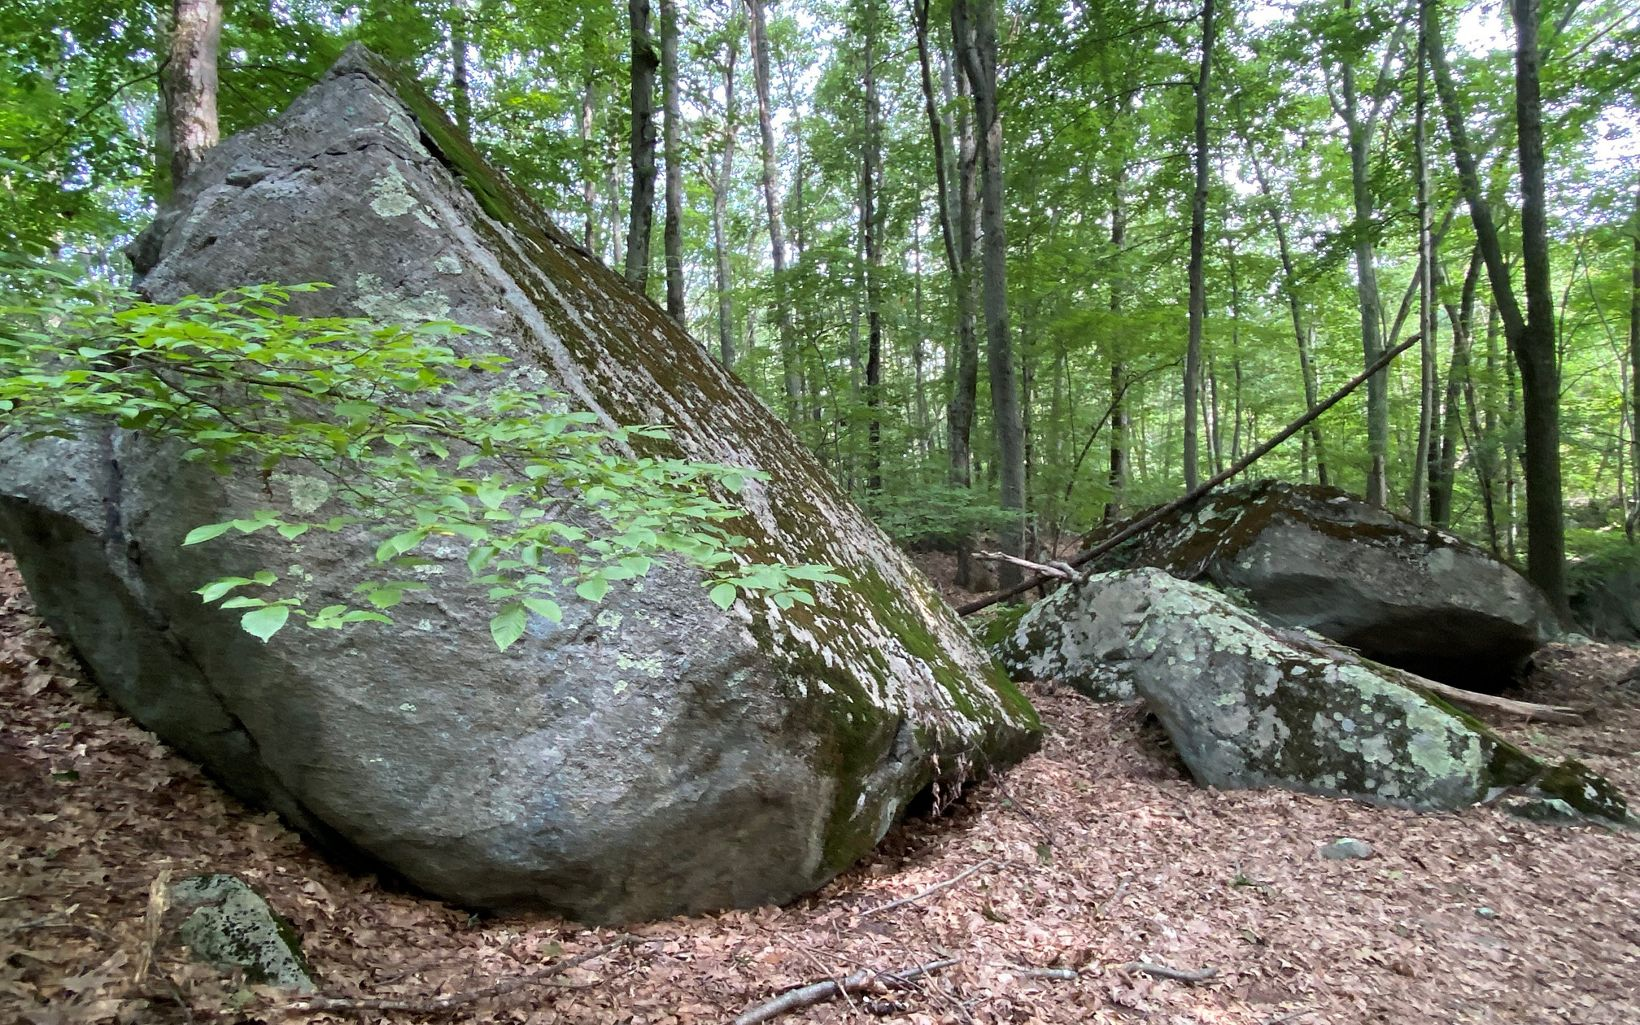 A large granite boulder, flat on the right side, is surrounded by young forest in summertime, with smaller boulders in the background.